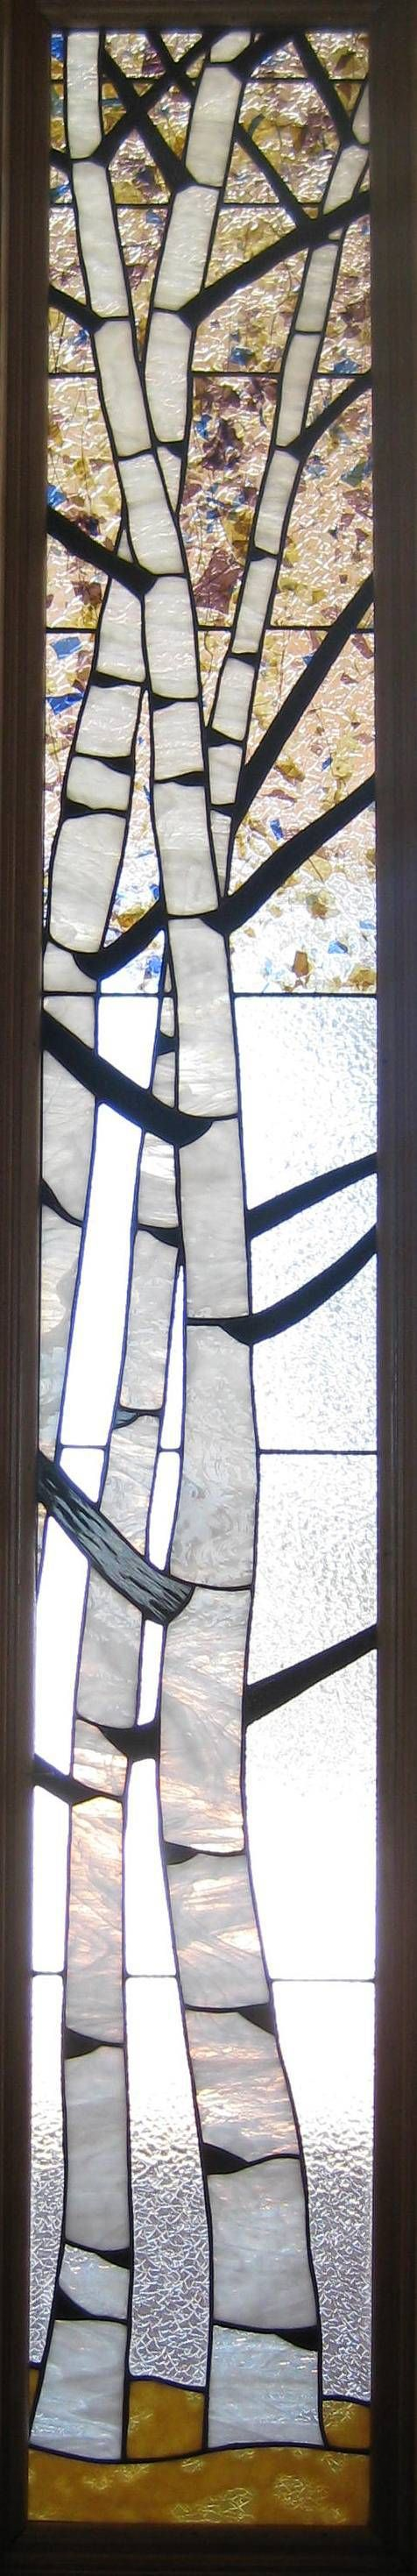 Beach theme decoration stained glass window panels arts crafts - Front Door Sidelight Picture Is Cropped To Show Just The Stained Glass Window